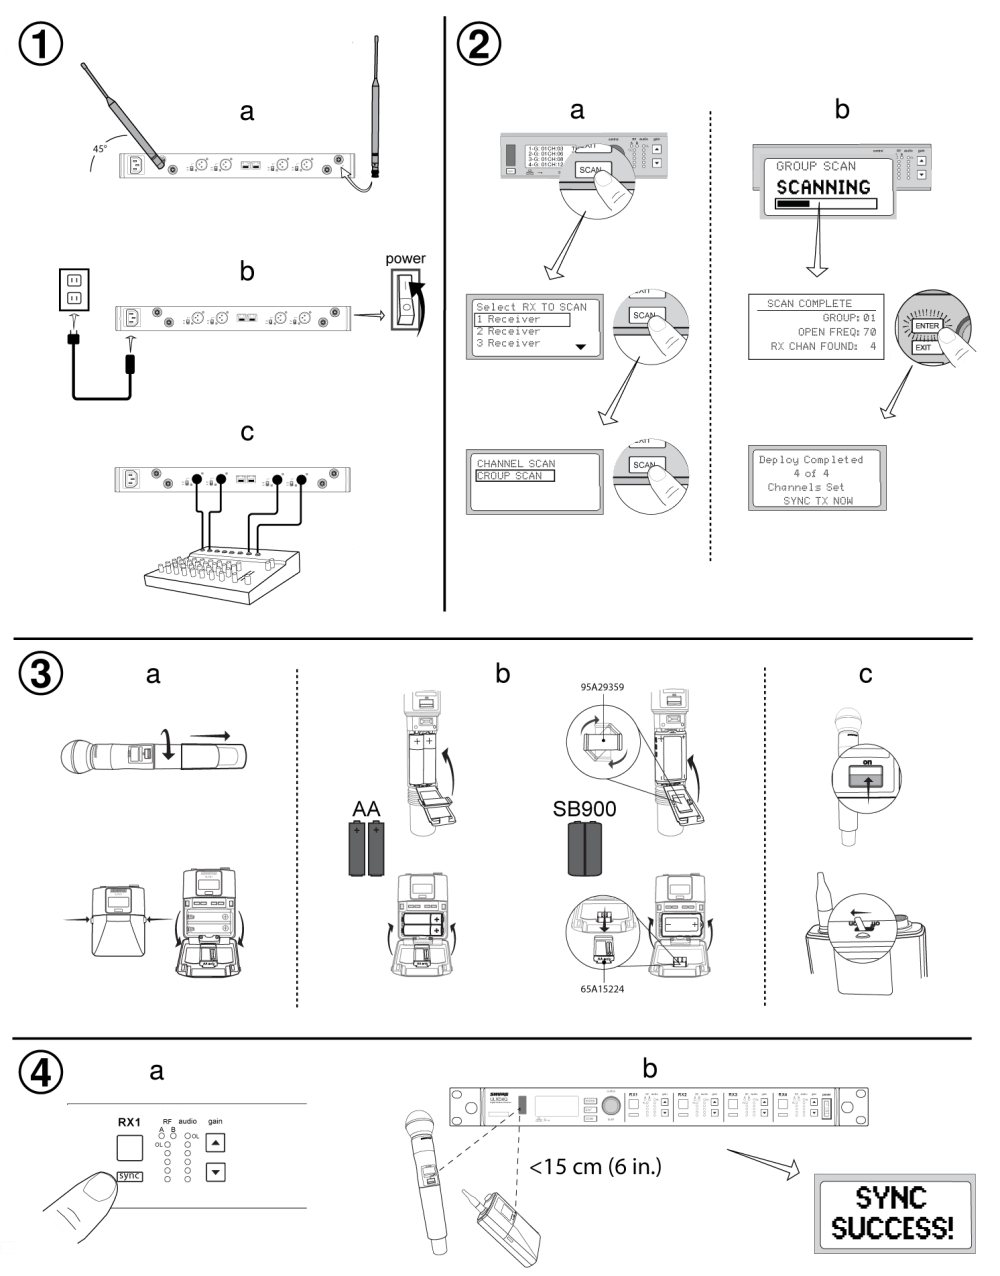 medium resolution of quickstart instructions shure publications user guides ulx d dual and quad quickstart instructions shure 4 pin mini xlr wiring diagram xlr connector